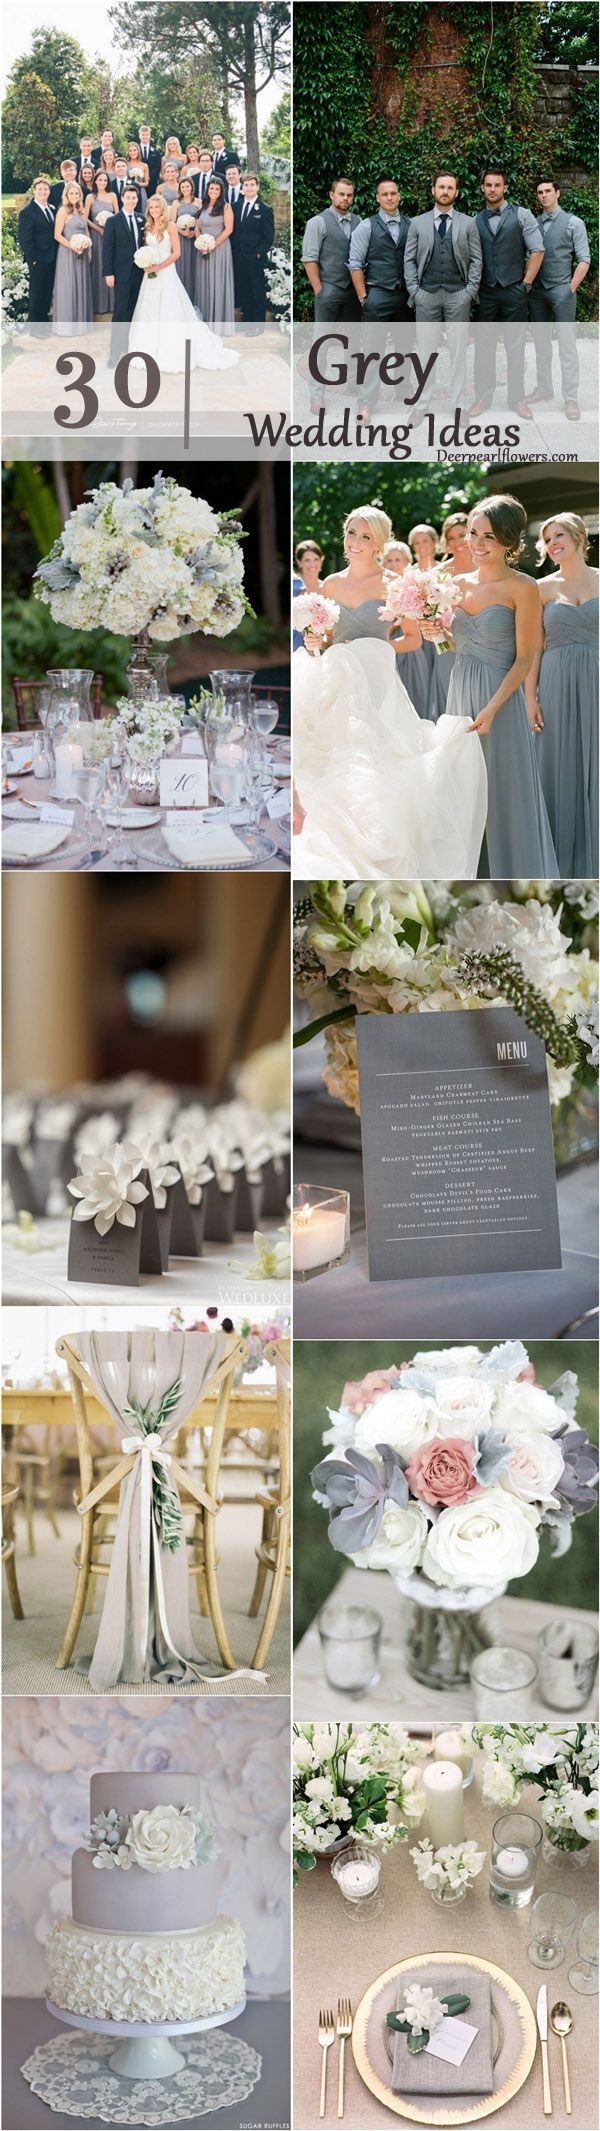 30 Timeless Grey and White Fall Wedding Ideas | Gray wedding colors ...